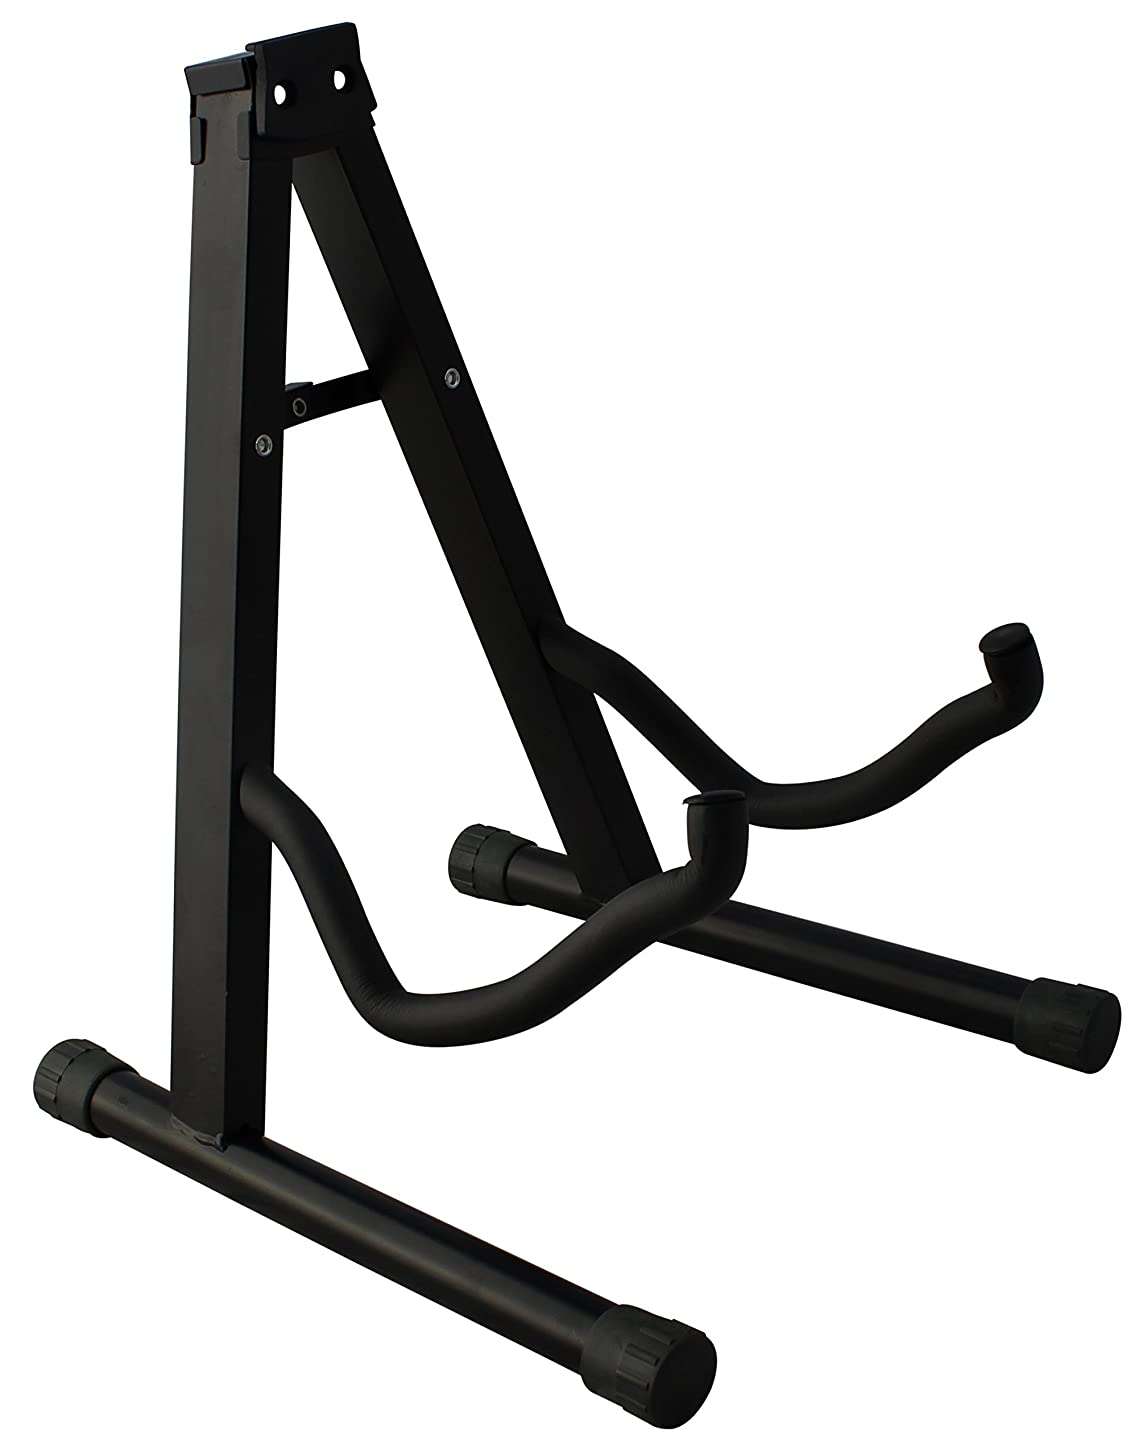 YmcYMC Universal Folding Guitar Stand with Secure Lock - for Acoustic and Electric Guitar